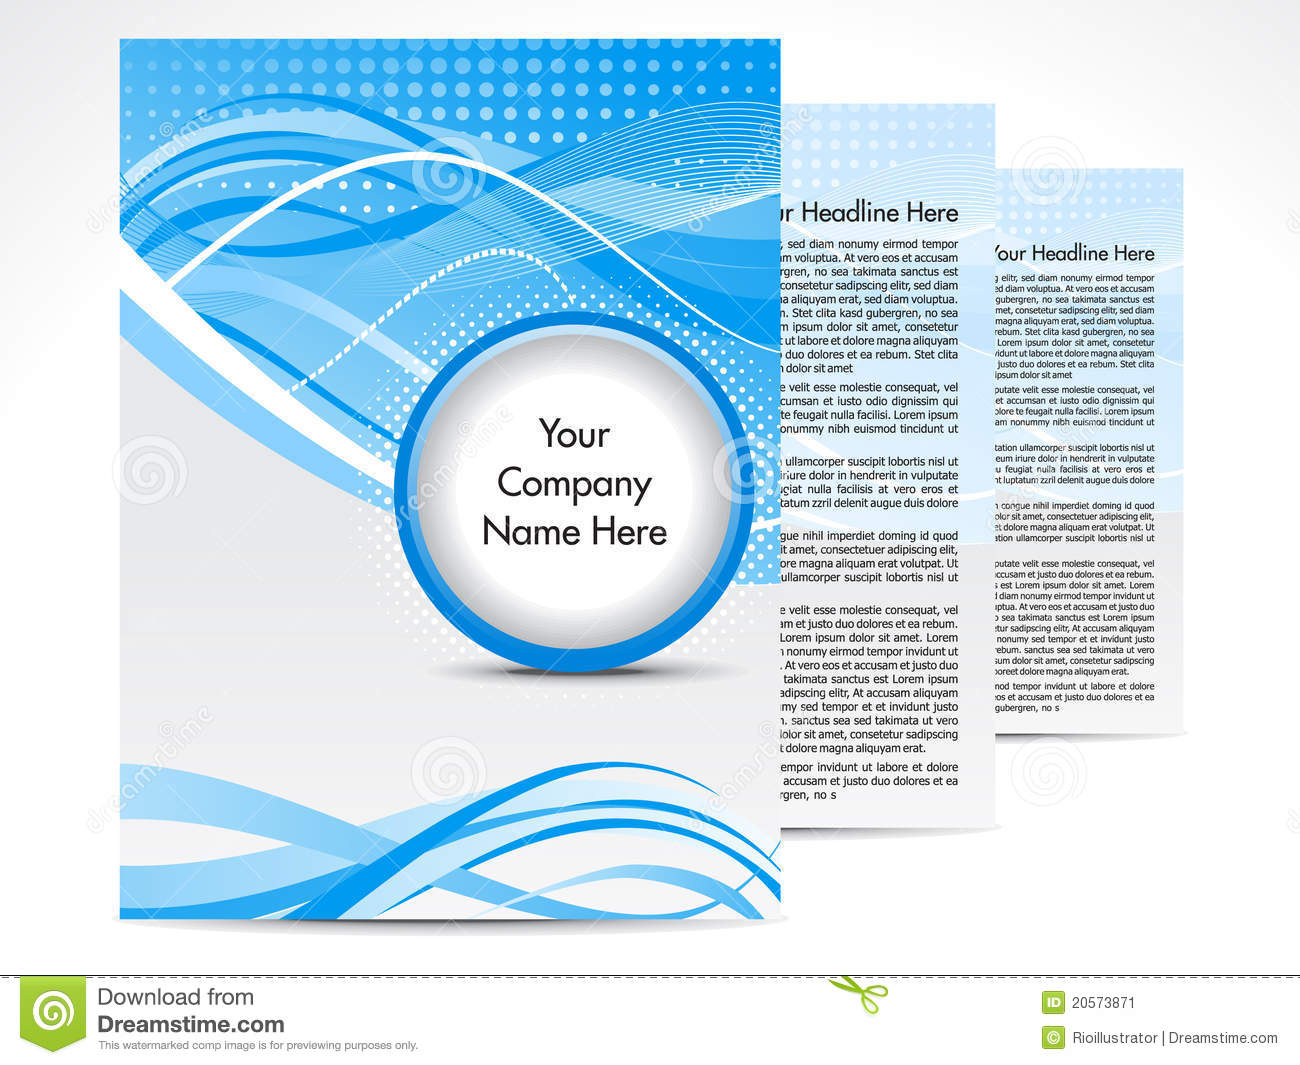 Abstract Blue Brochure Design Stock Image - Image: 20573871